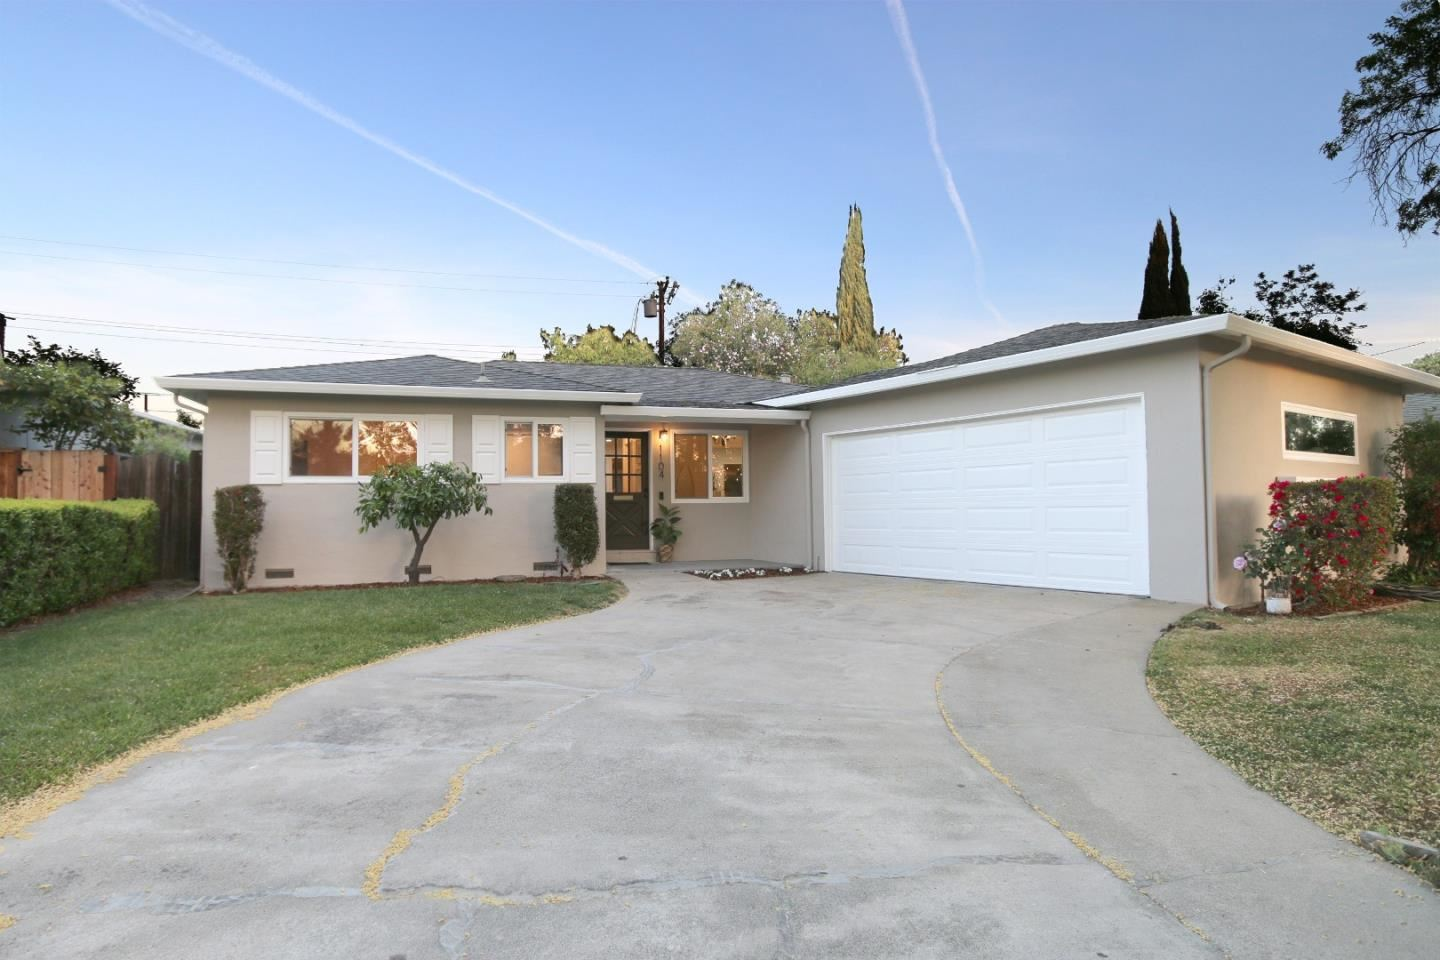 Photo for 1104 Phyllis Avenue, MOUNTAIN VIEW, CA 94040 (MLS # ML81841776)